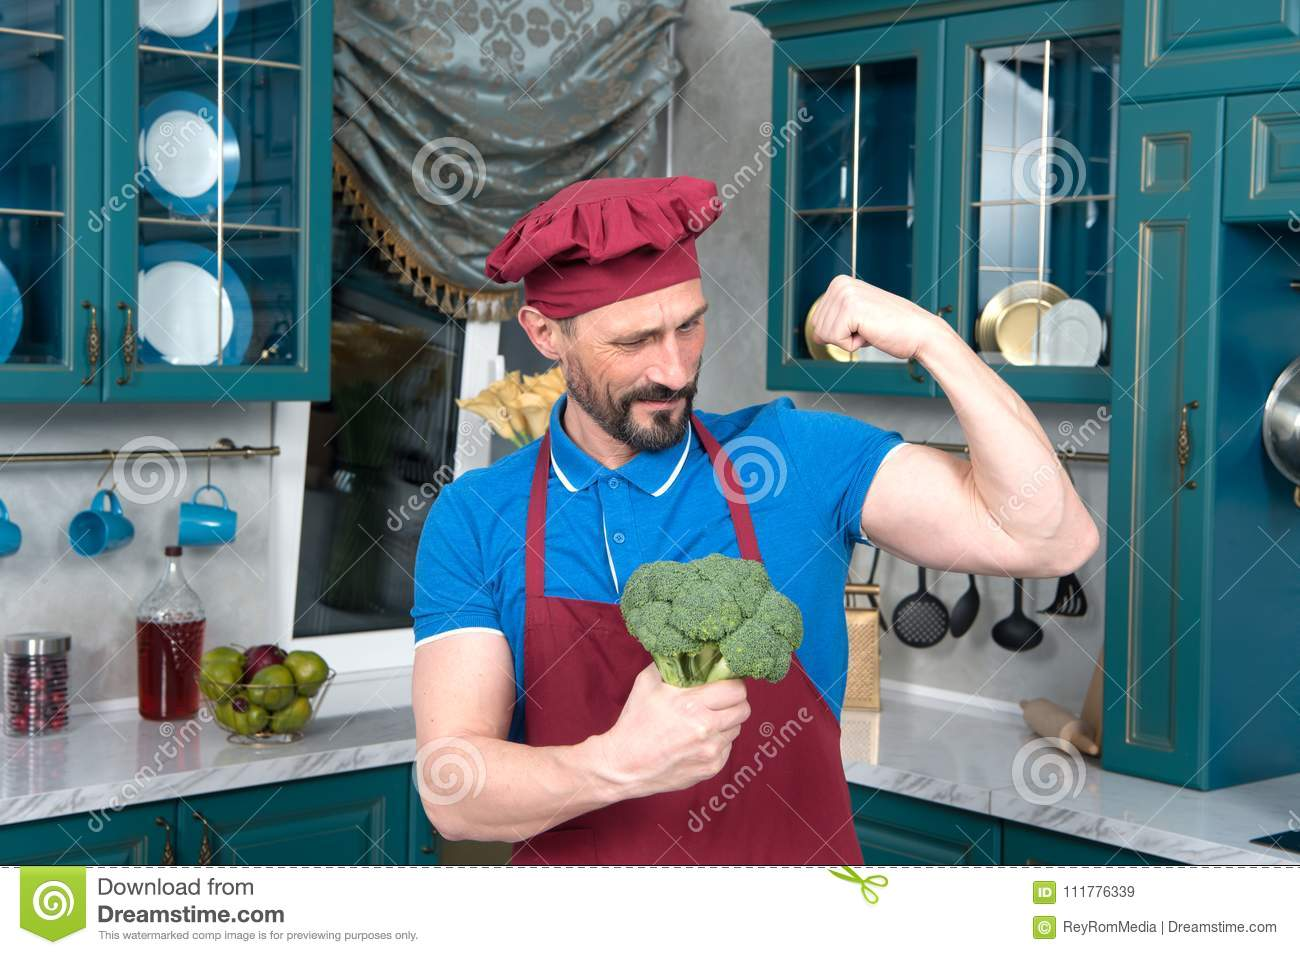 Broccoli gives power to man. bicep or broccoli chose. Guy holds broccoli in hands and shows his bicep.